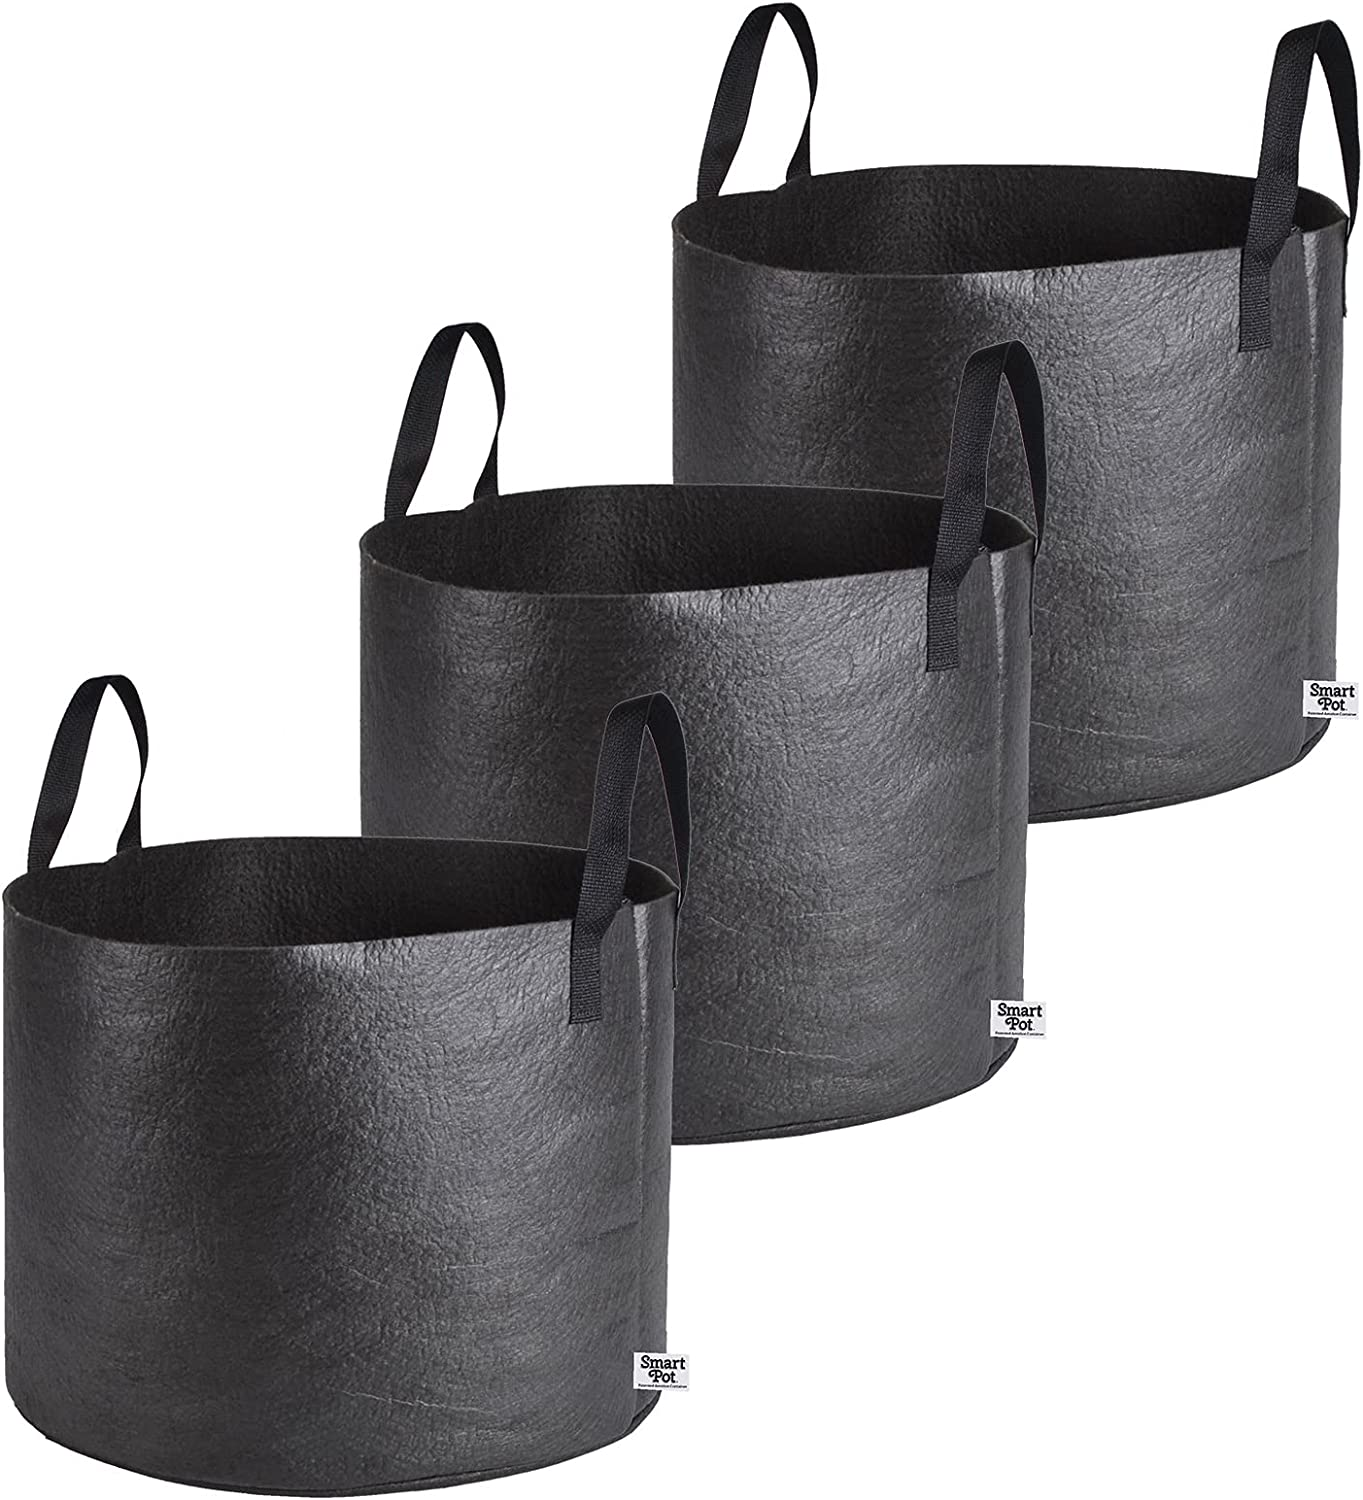 Manufacturer regenerated product 3 Under blast sales Pcs of Fabric Grow Planter Root Aeration Pots Handle with Bags